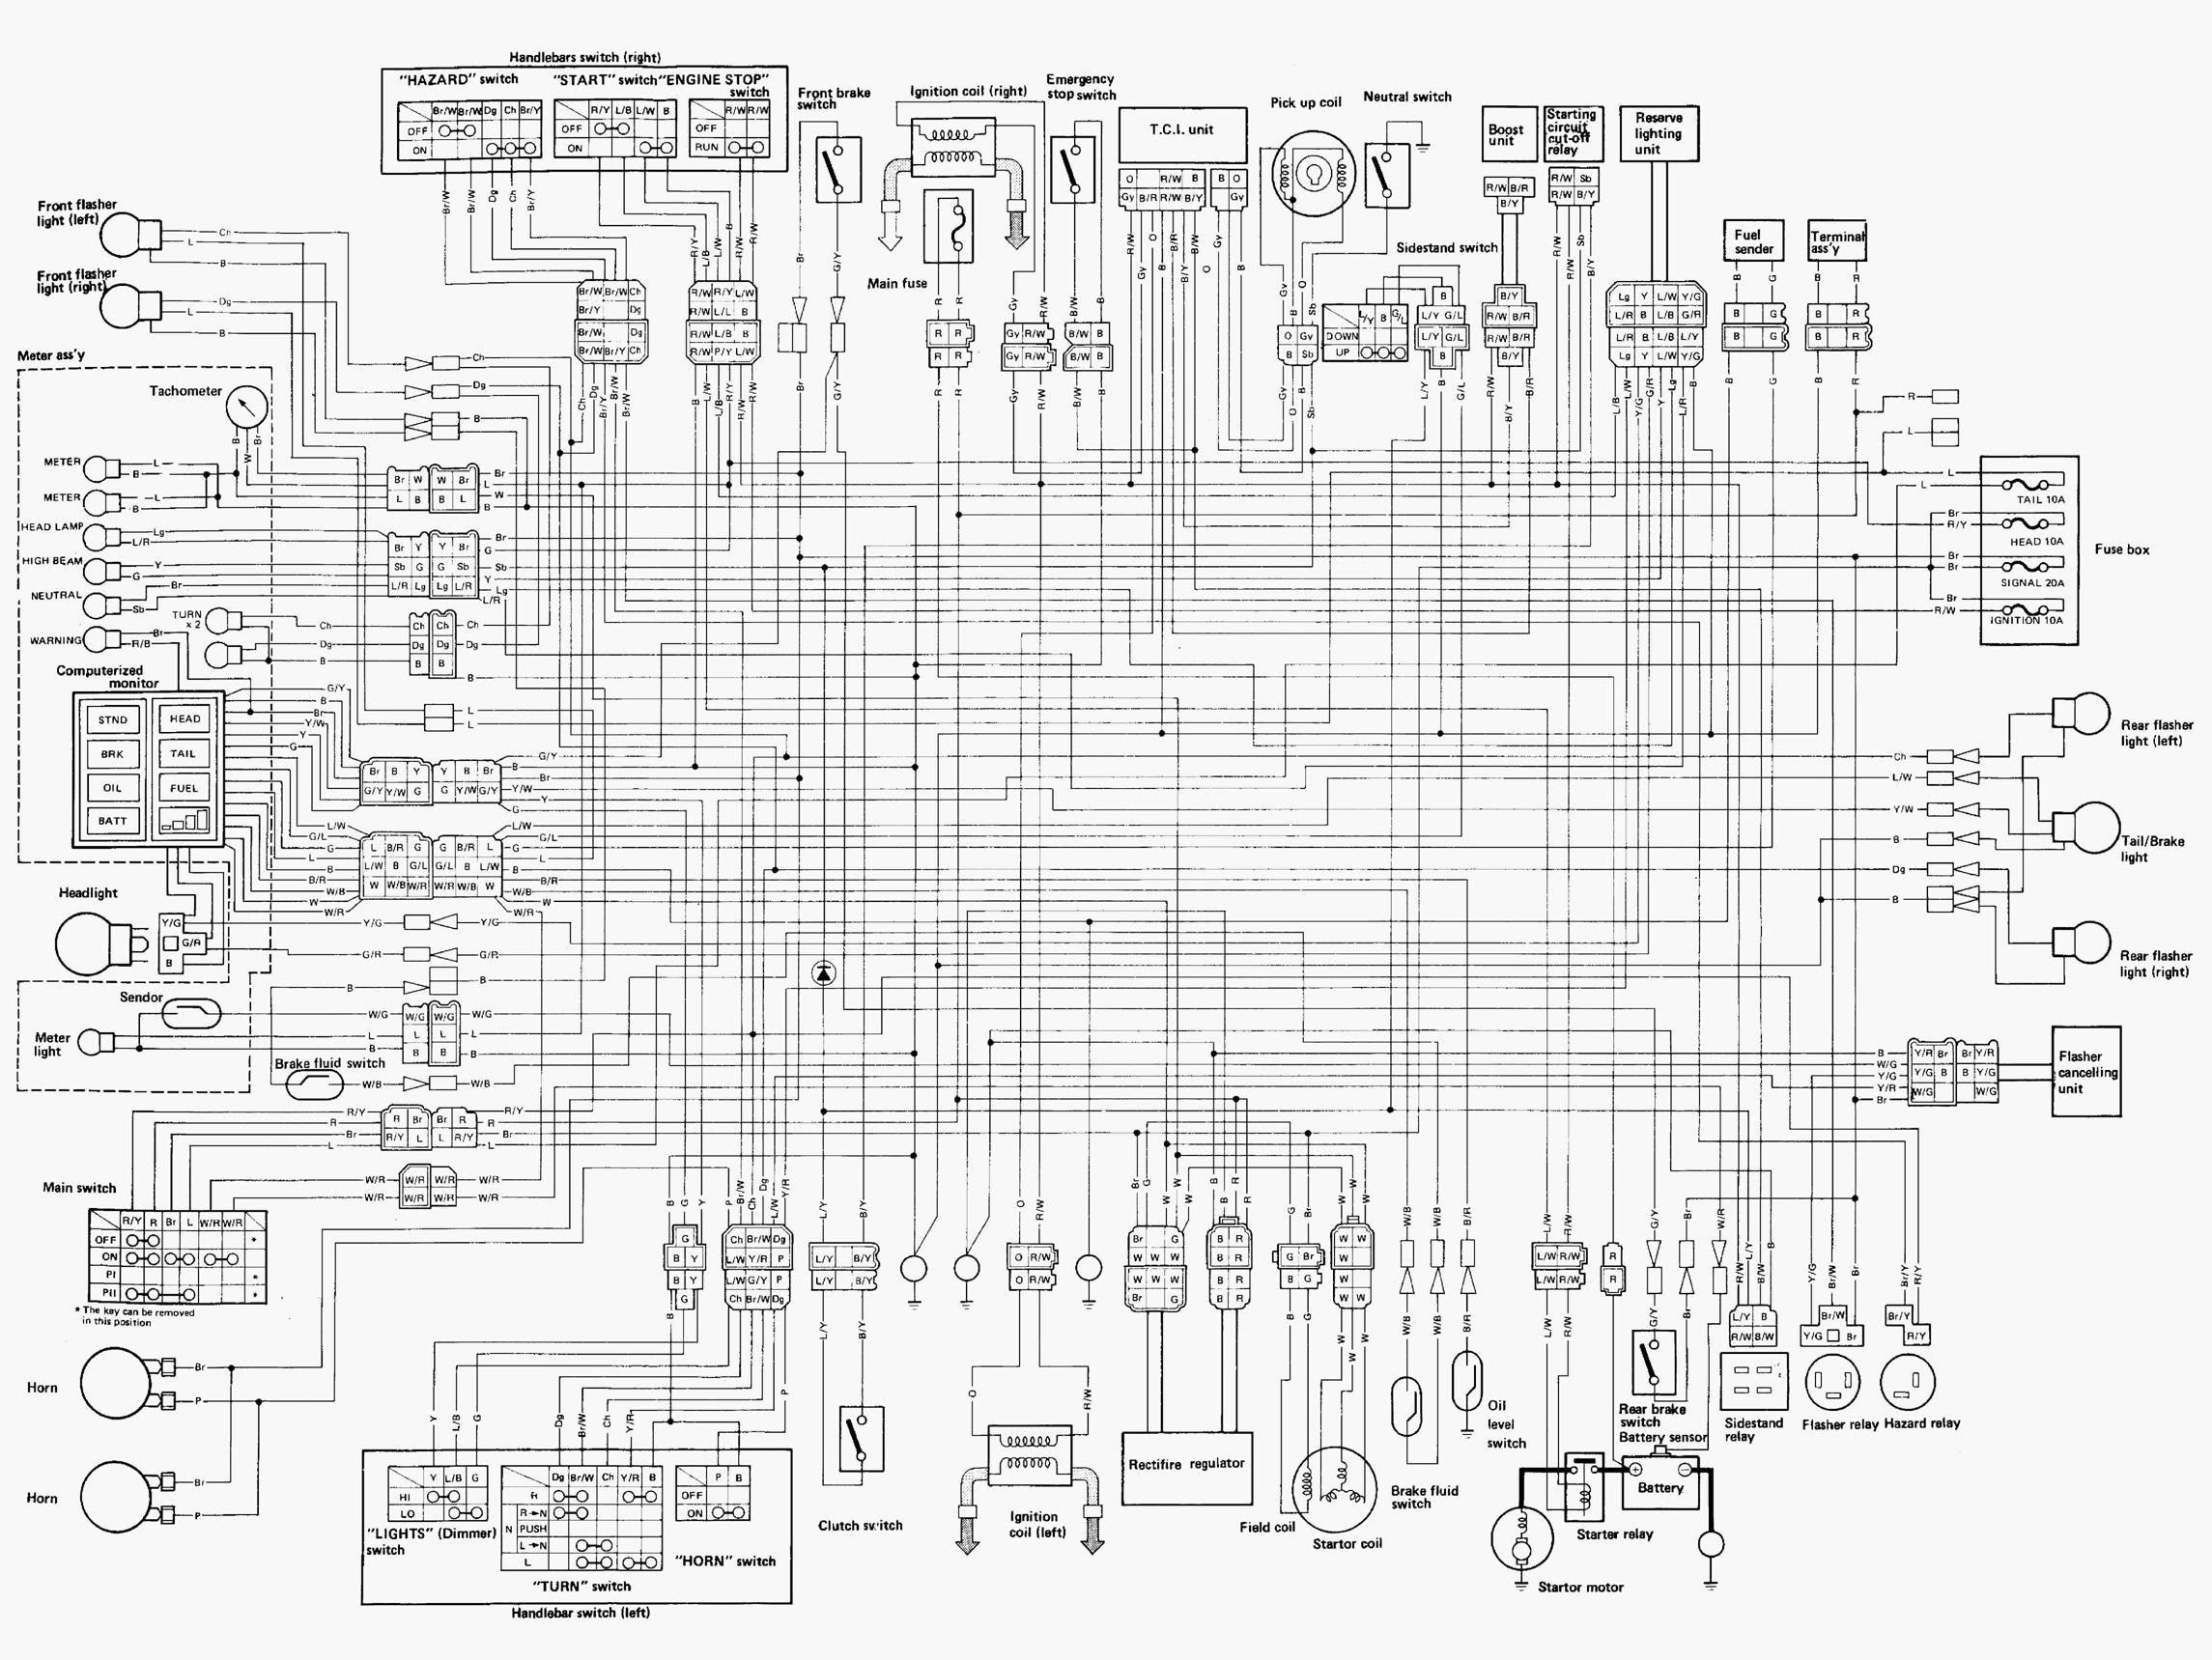 1982 Yamaha Maxim Xj1100 Wiring Diagram Wiring Diagram View A View A Zaafran It